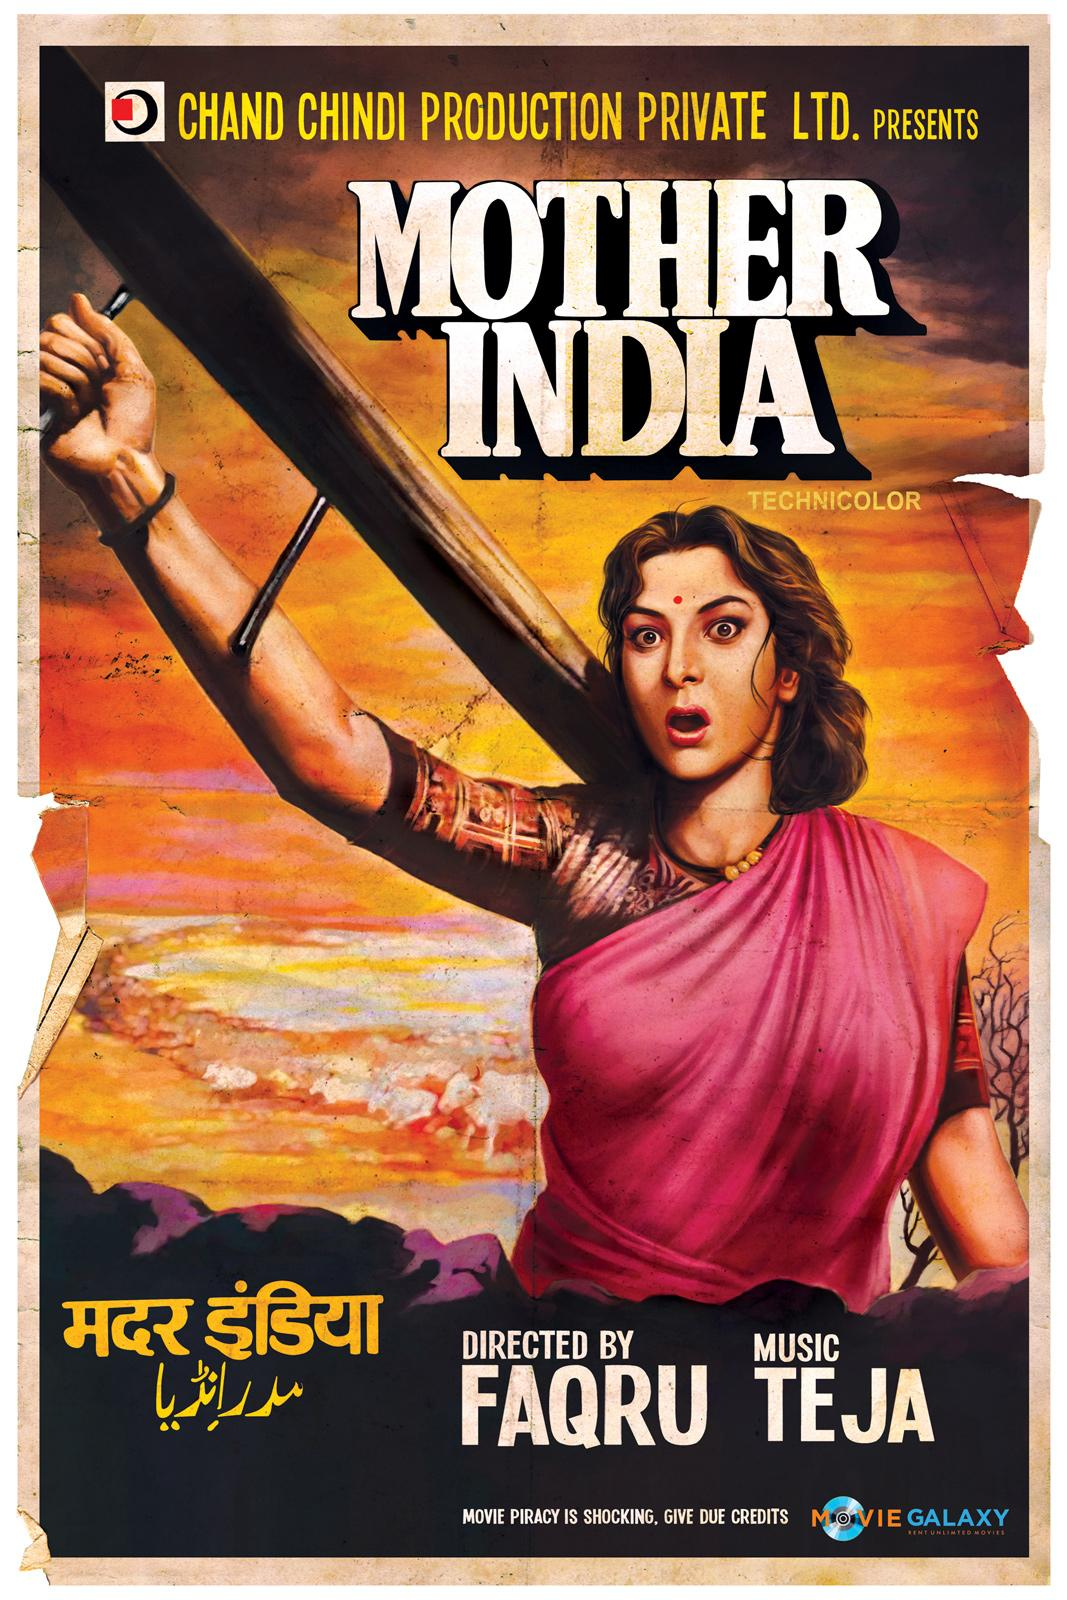 Movie Galaxy Outdoor Ad -  Piracy is Shocking, Mother India